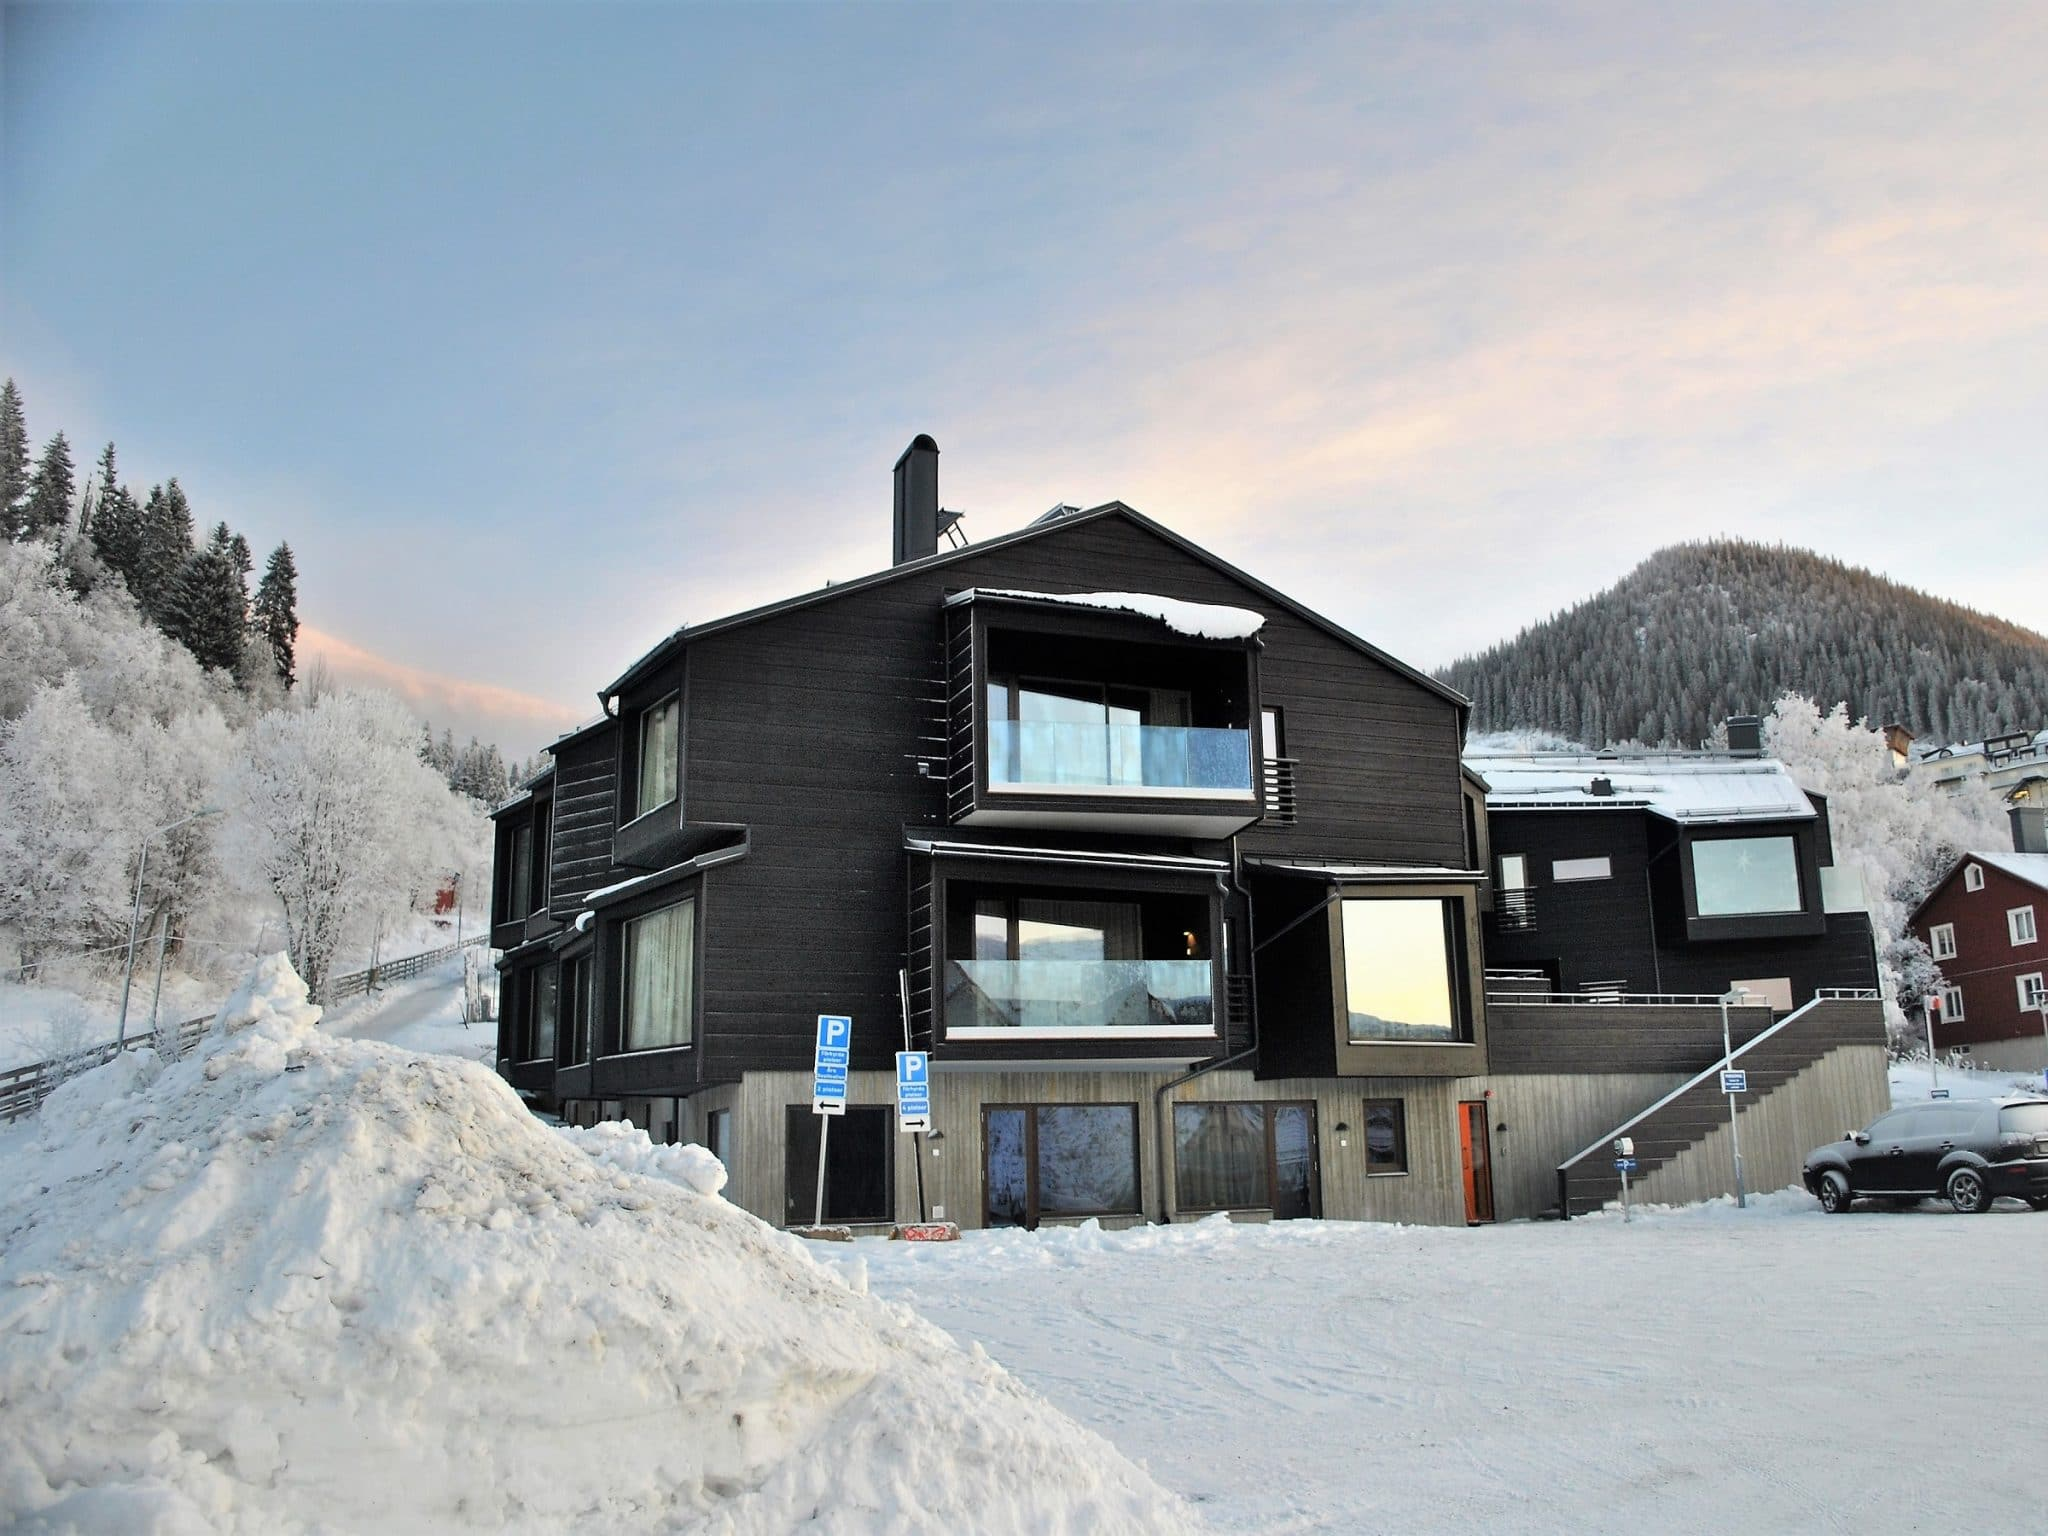 Skiers Lodge in winter